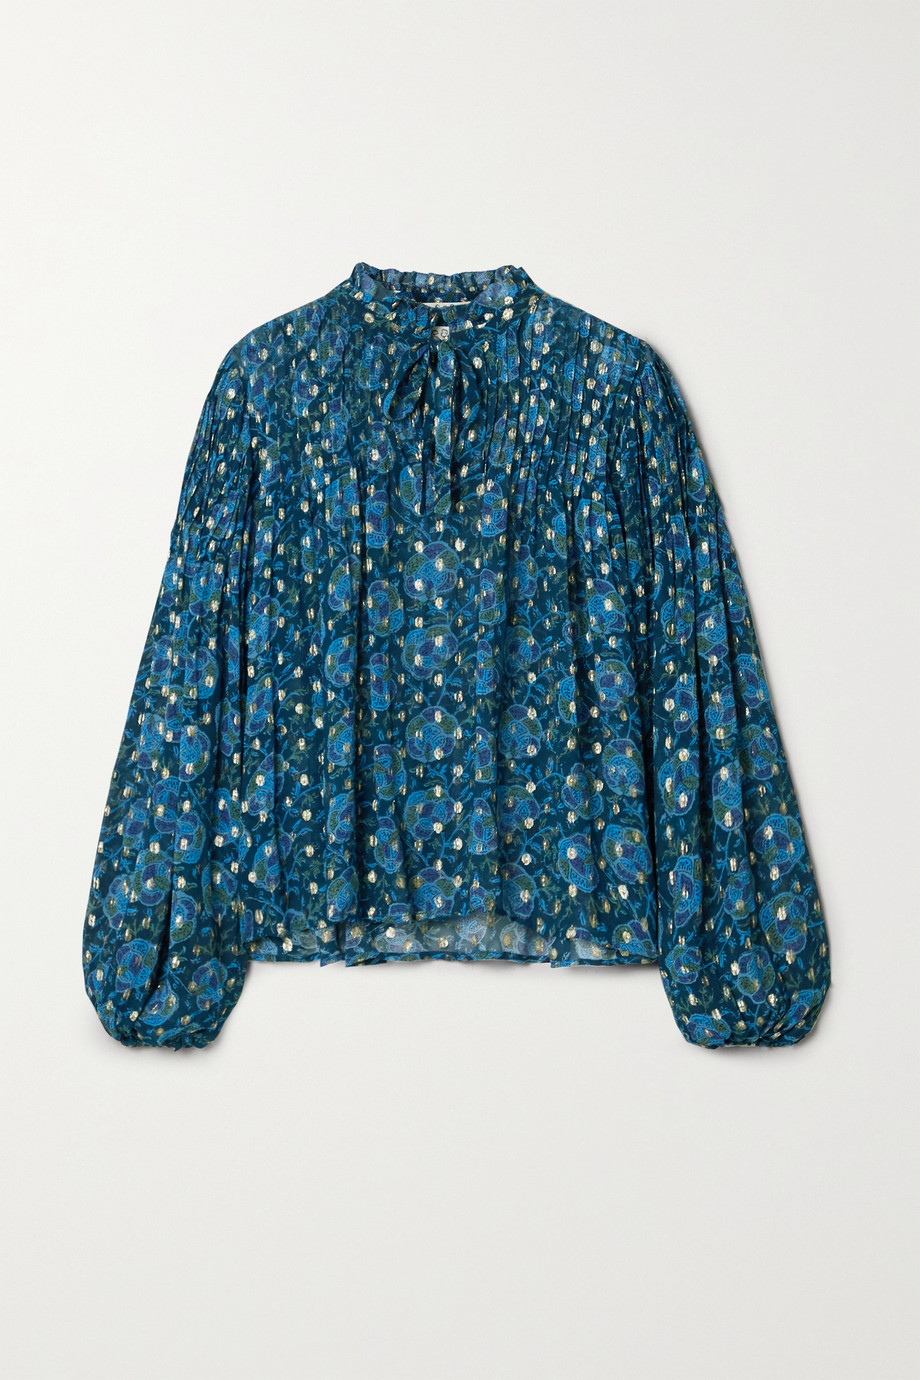 Sea Positano pintucked floral-print fil coupé georgette blouse